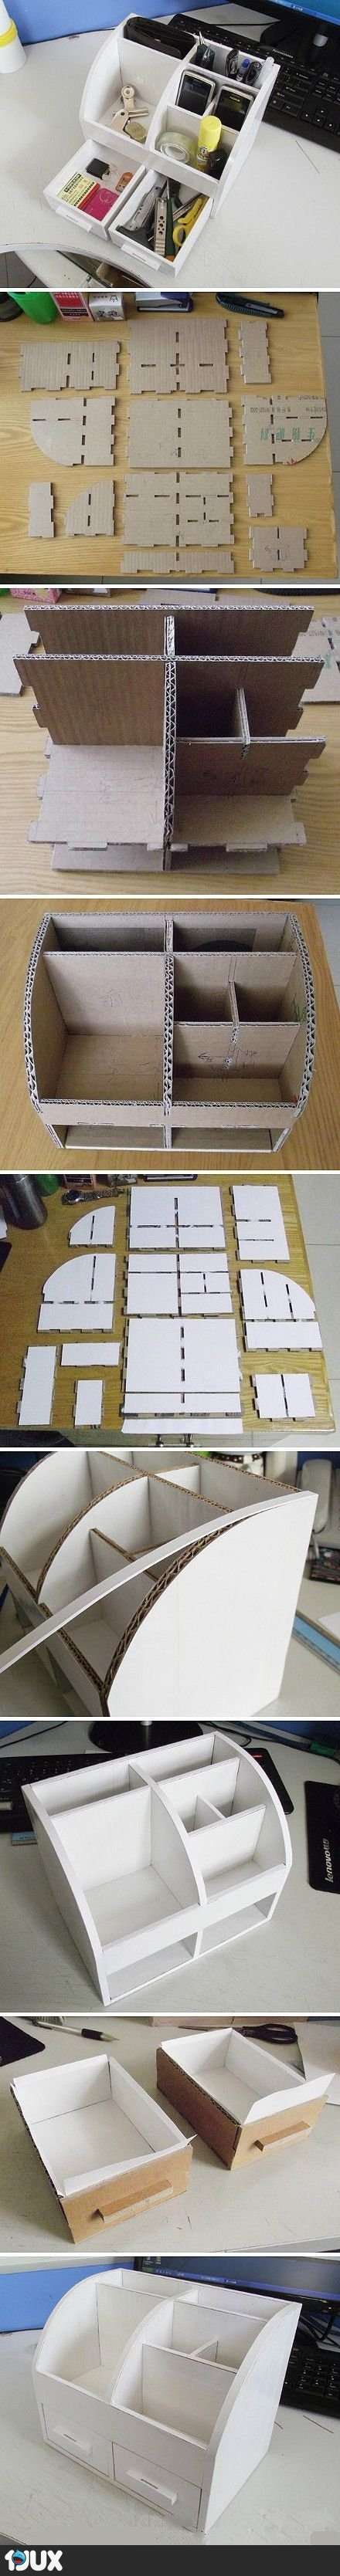 tisch organizer aus pappe diy pinterest. Black Bedroom Furniture Sets. Home Design Ideas